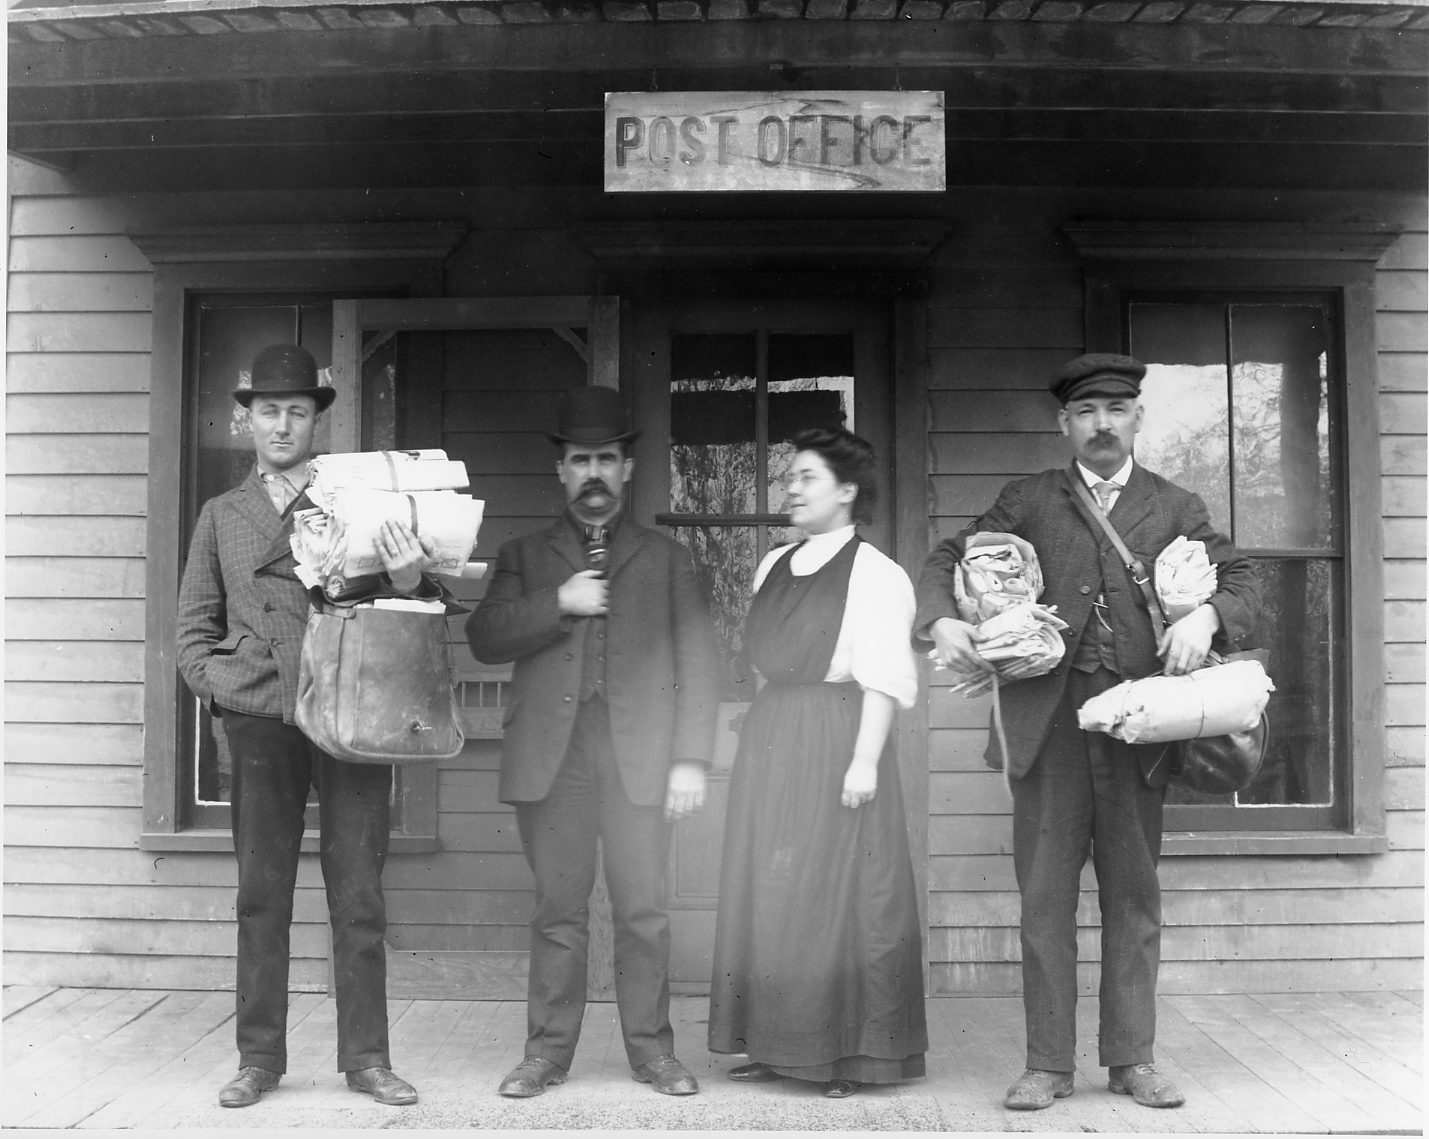 Images of people on porch of post office